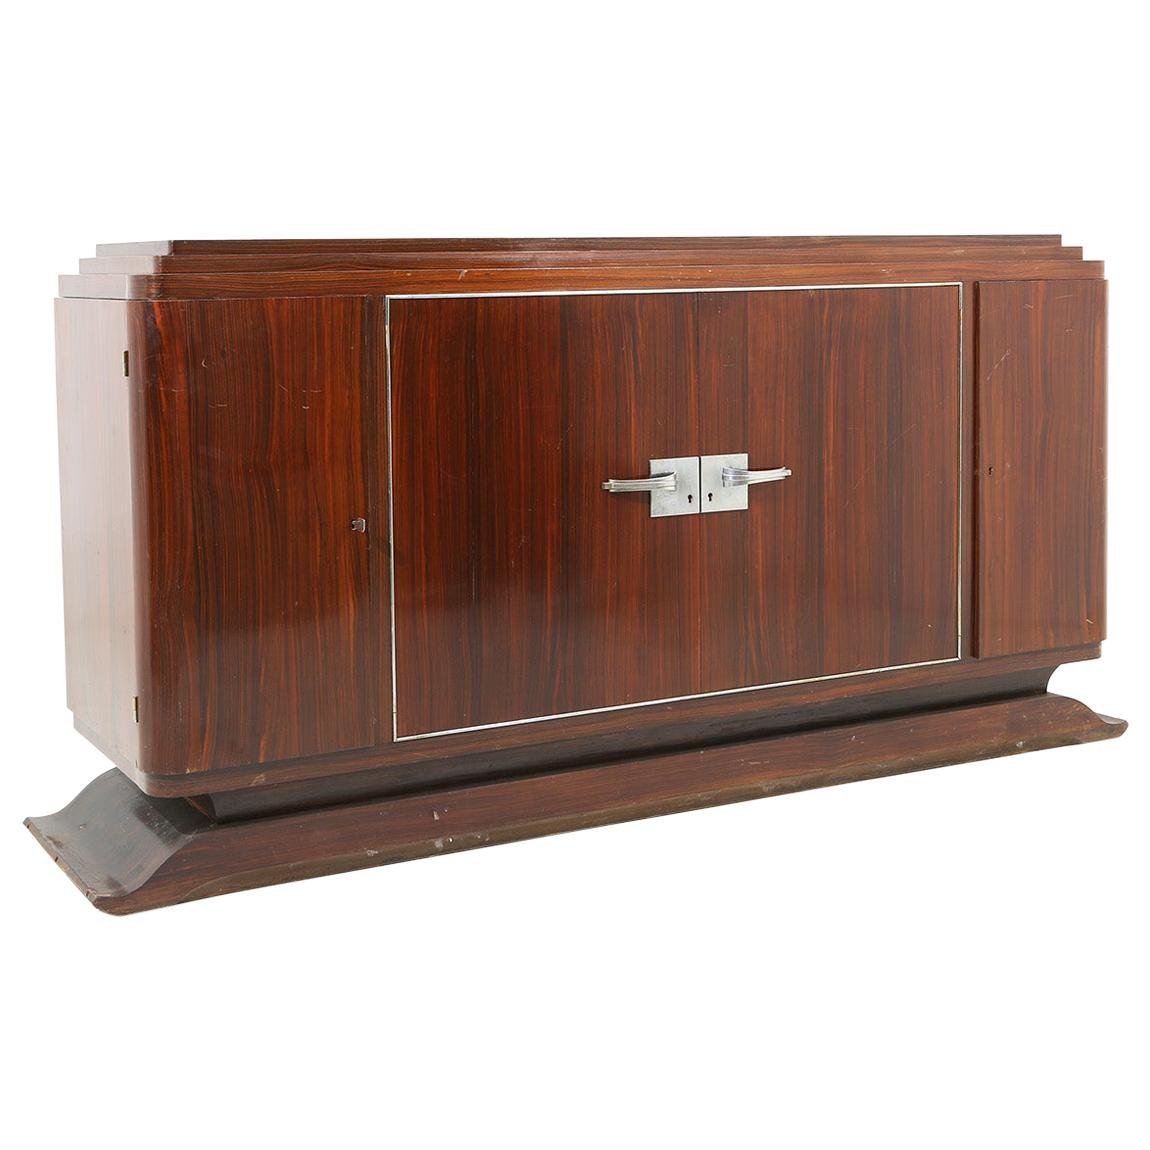 French Art Deco Sideboard in Macassar Wood and Chromed Aluminum, 1930s